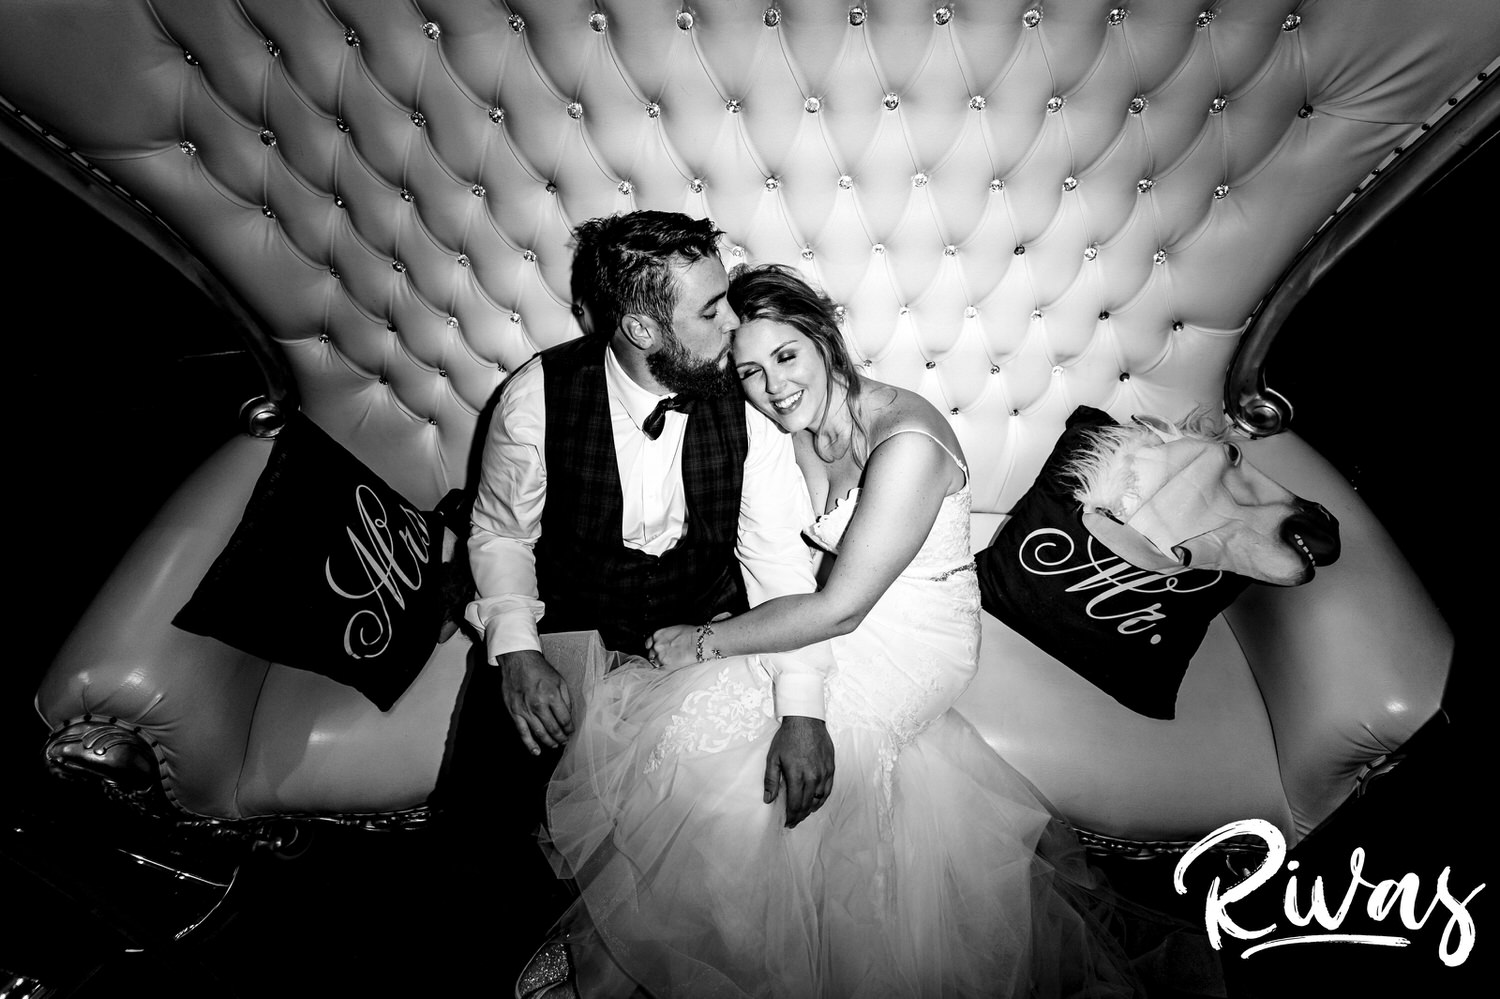 A candid black and white picture of a bride and groom collapsed on a large, tufted sofa during their epic reception at Executive Hills Polo Club.